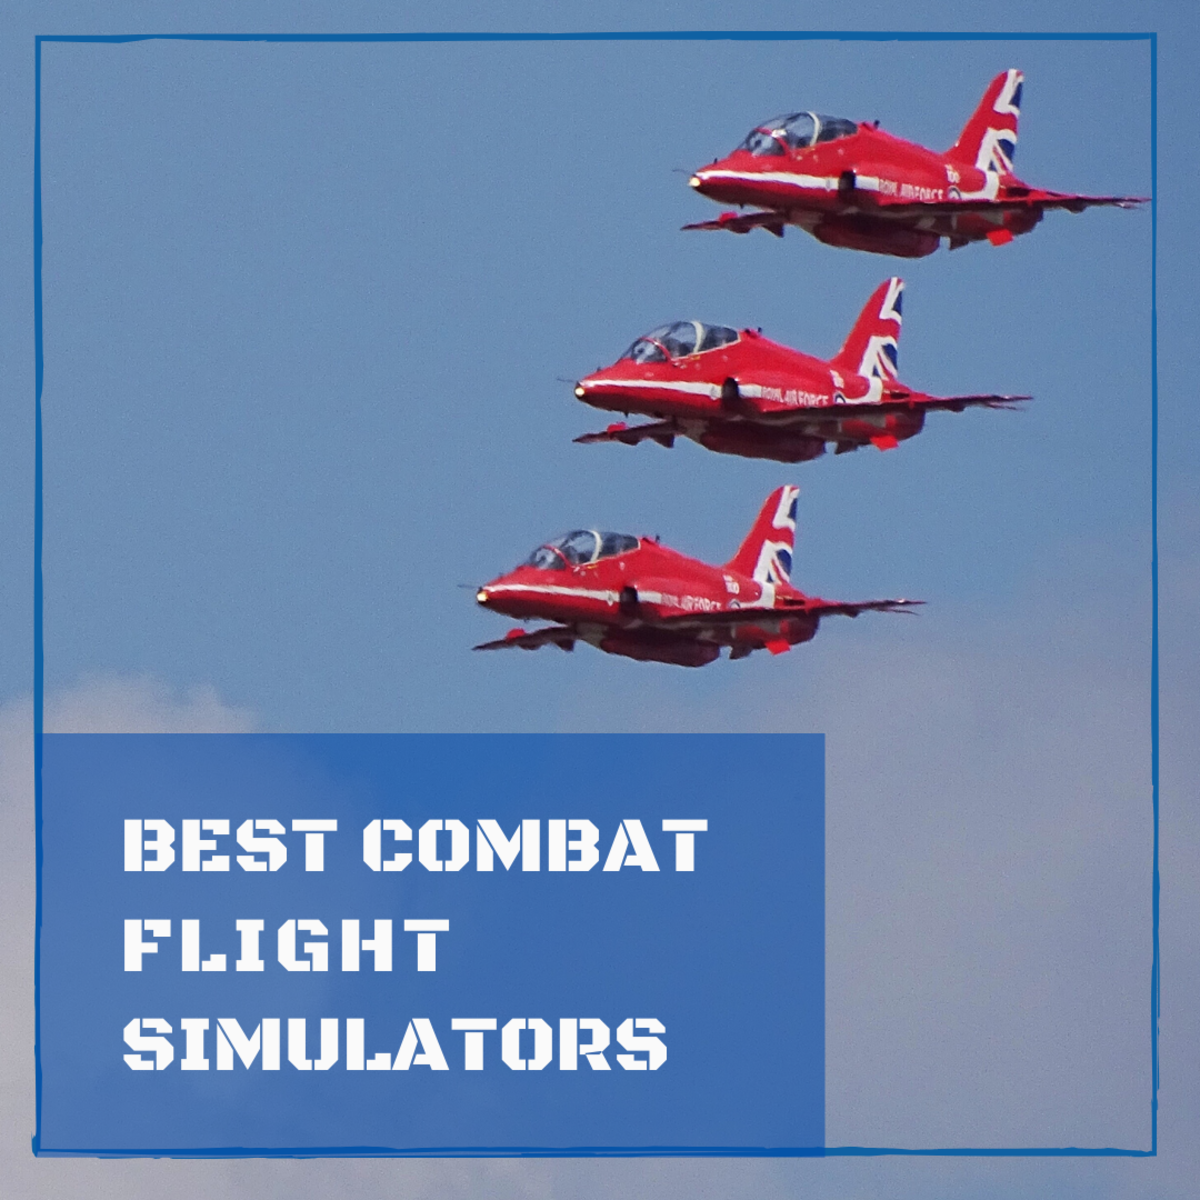 Best Combat Flight Simulators